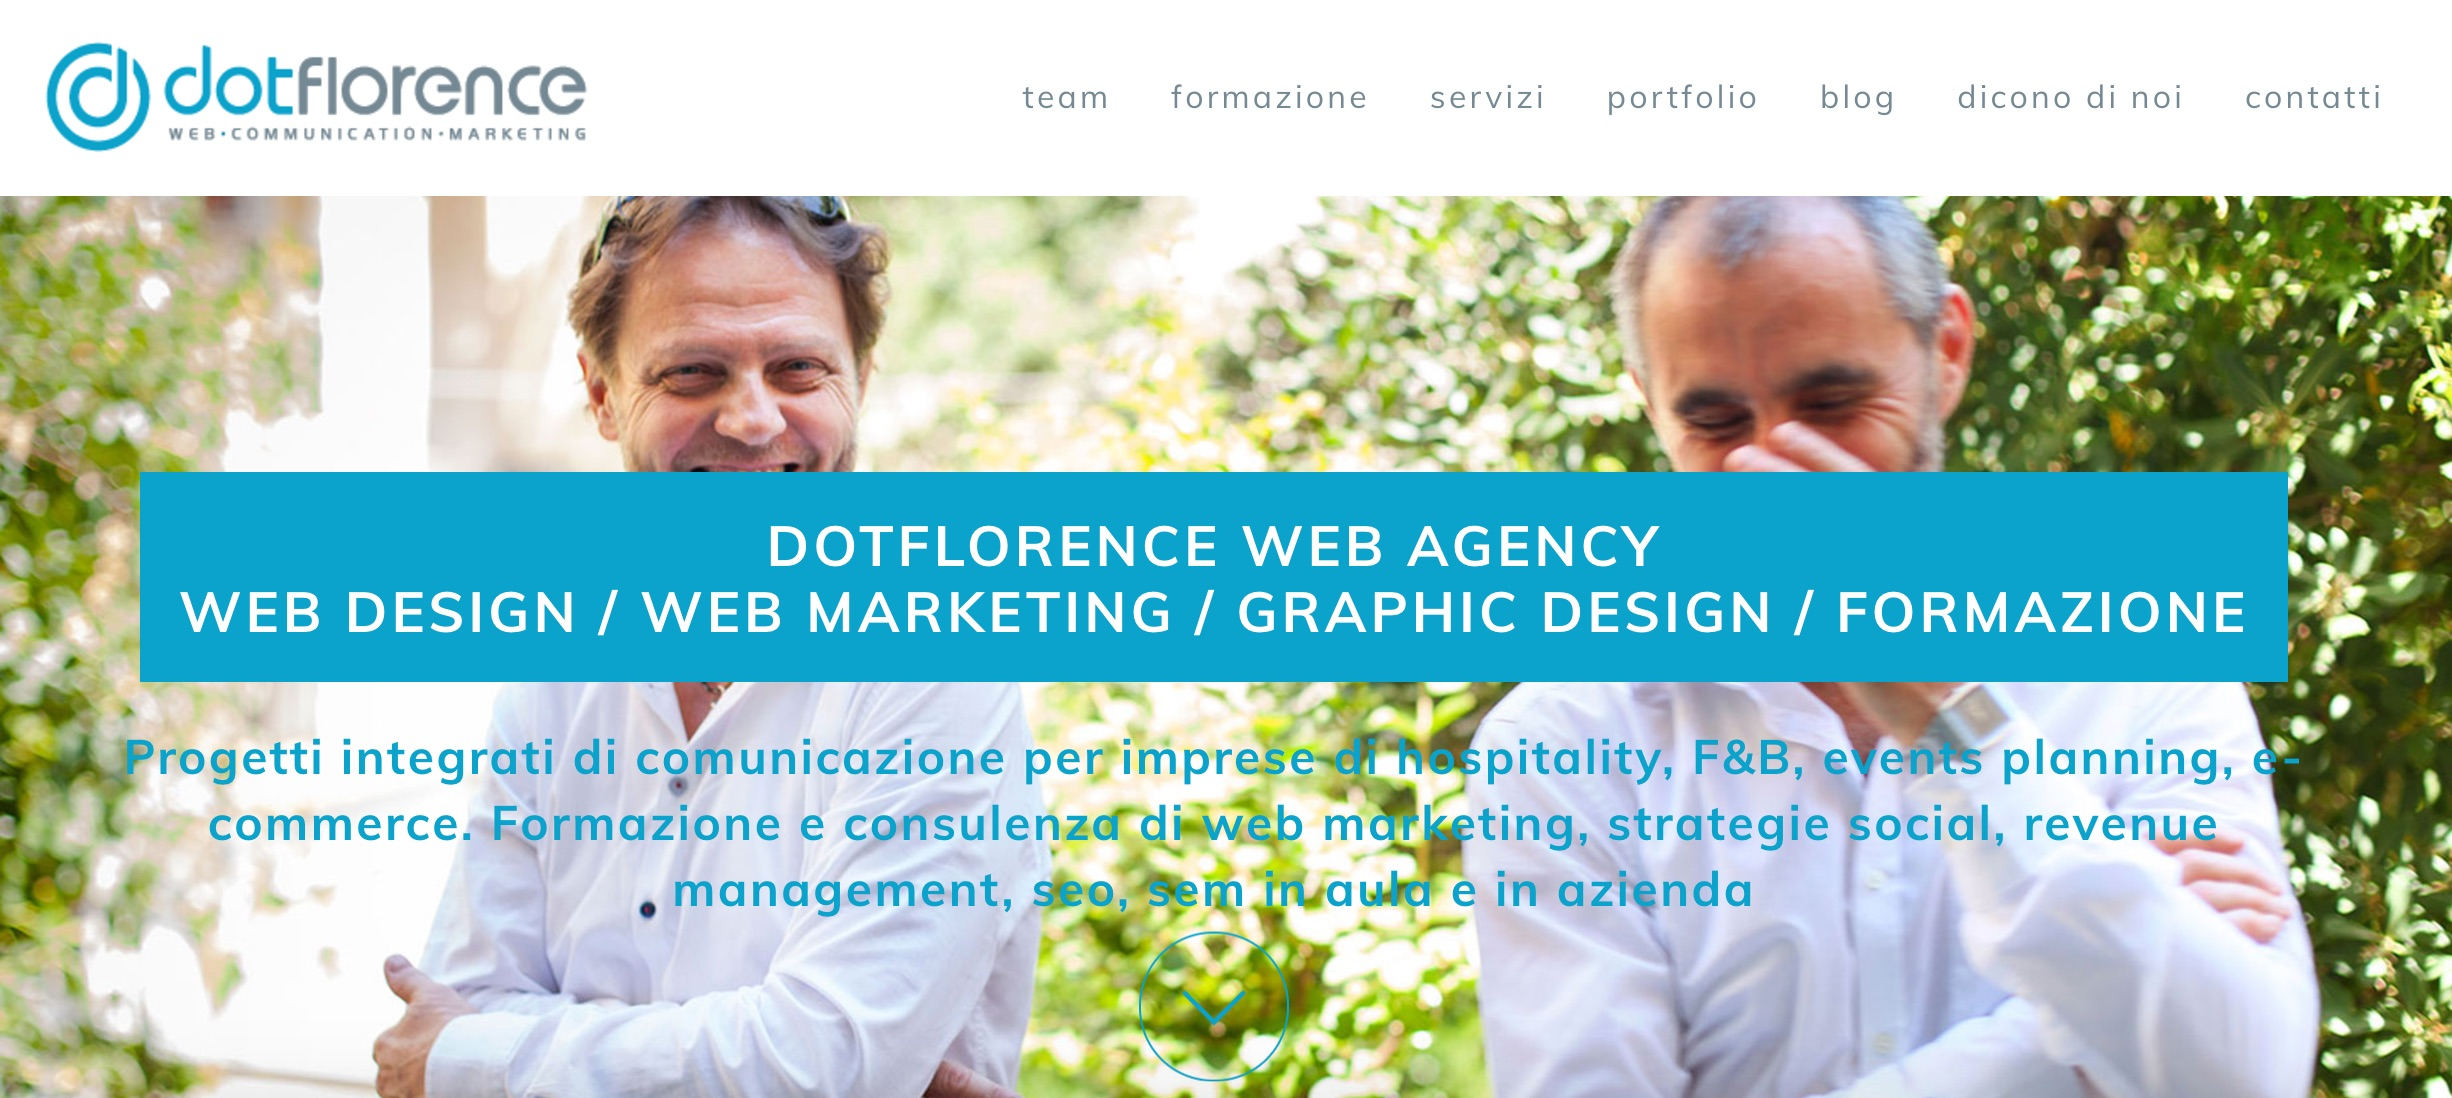 home-page-dotflorence